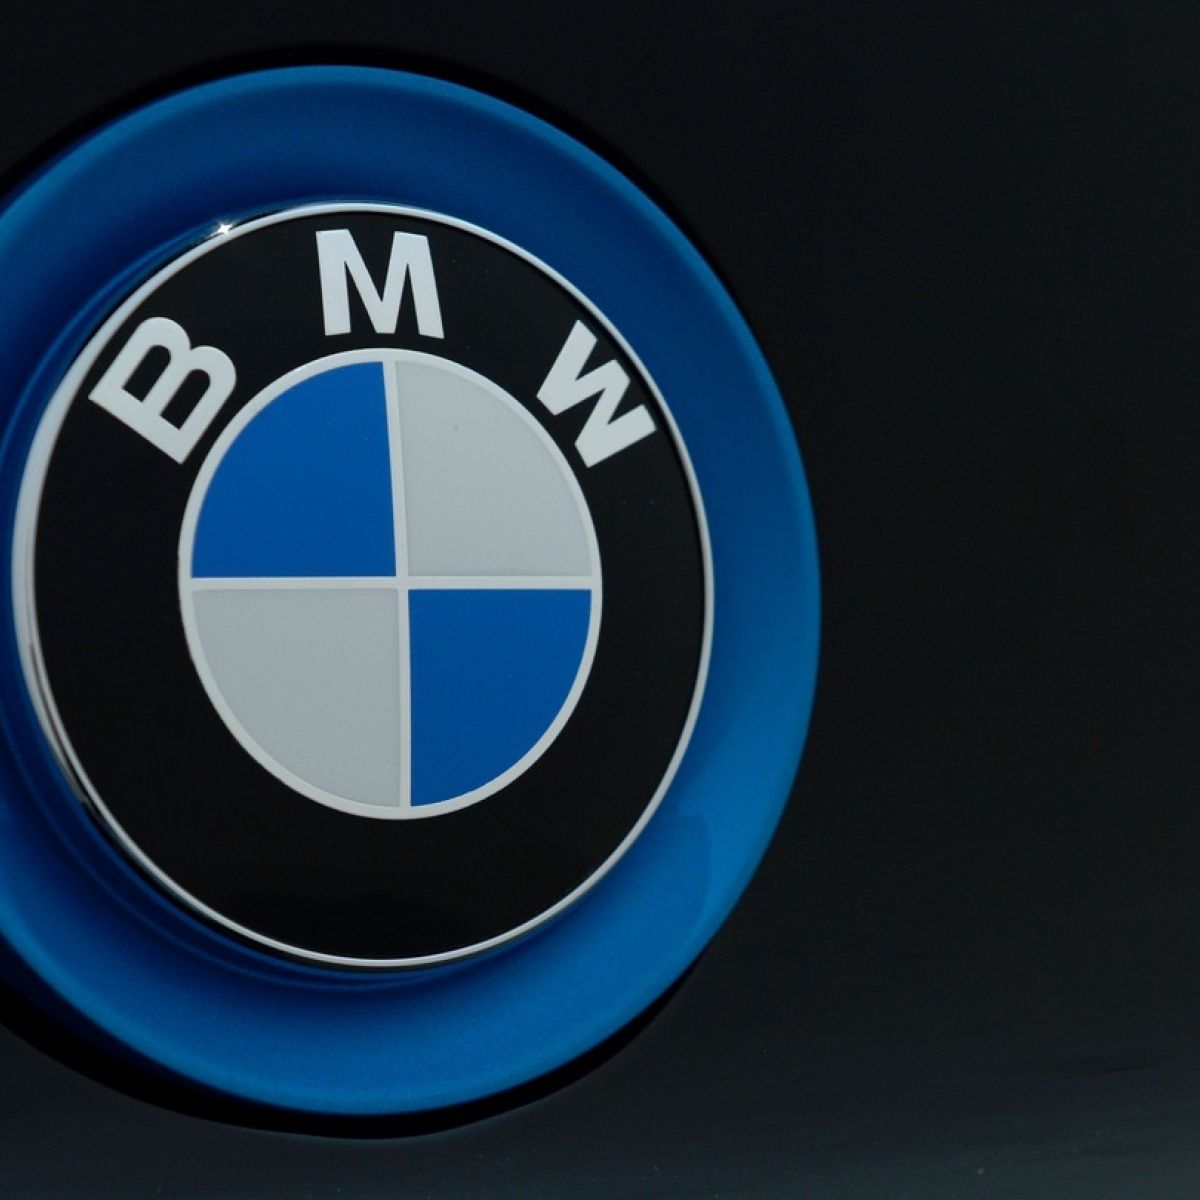 BMW's timing chain problem comes back to haunt carmaker